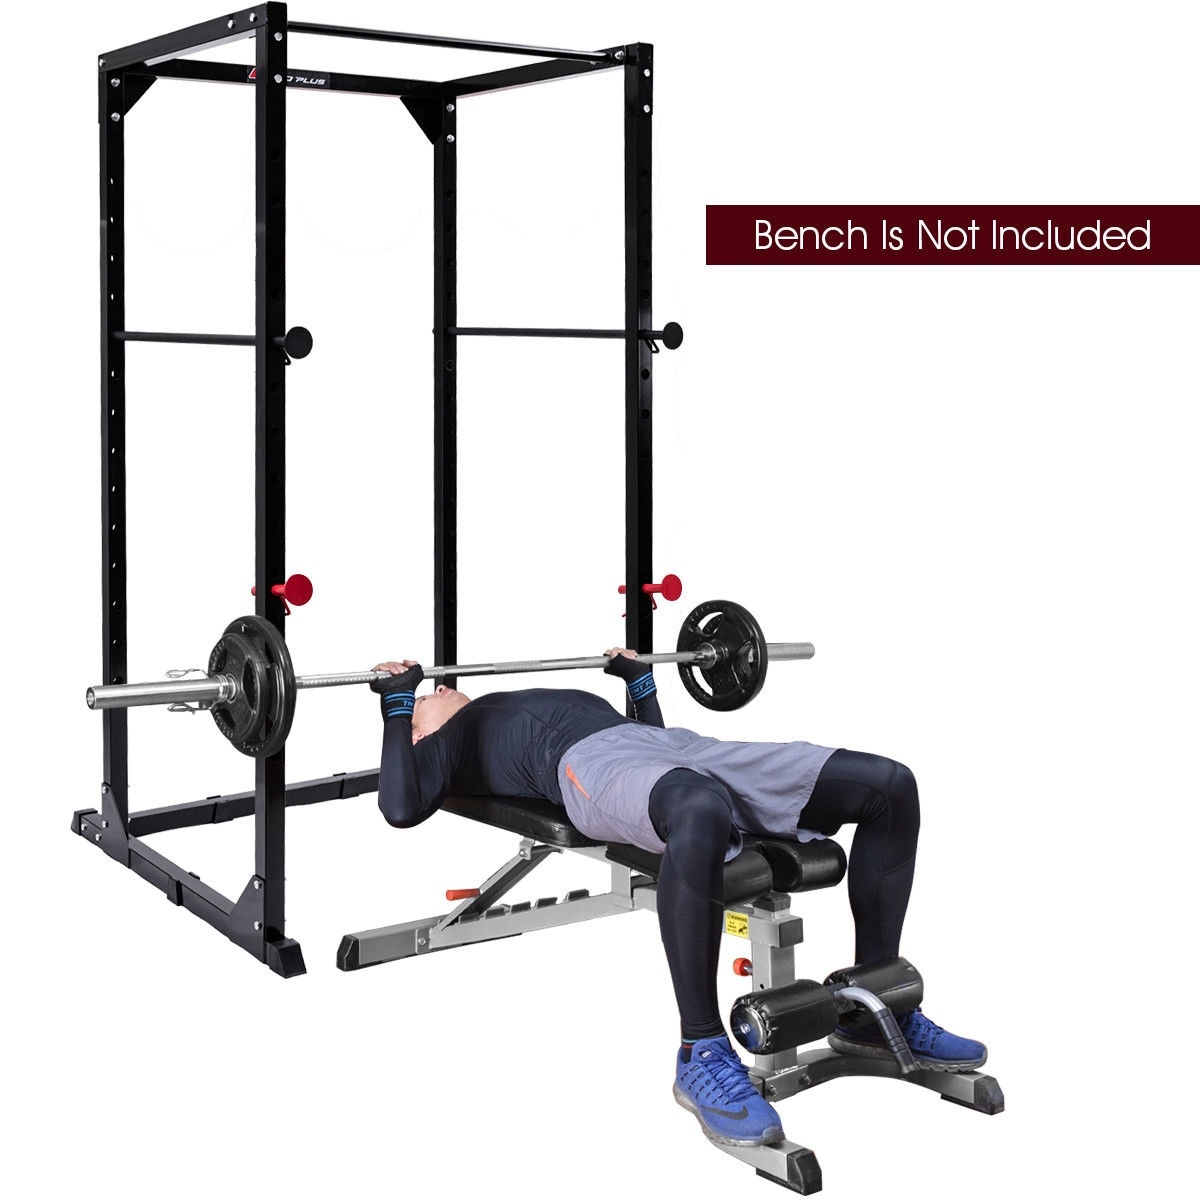 ae6c0fa7d6d Shop Goplus Power Rack Pull Chin Up Bars Squat Lift Cage Fitness Workout  Strength Training - Black - On Sale - Free Shipping Today - Overstock -  19567352